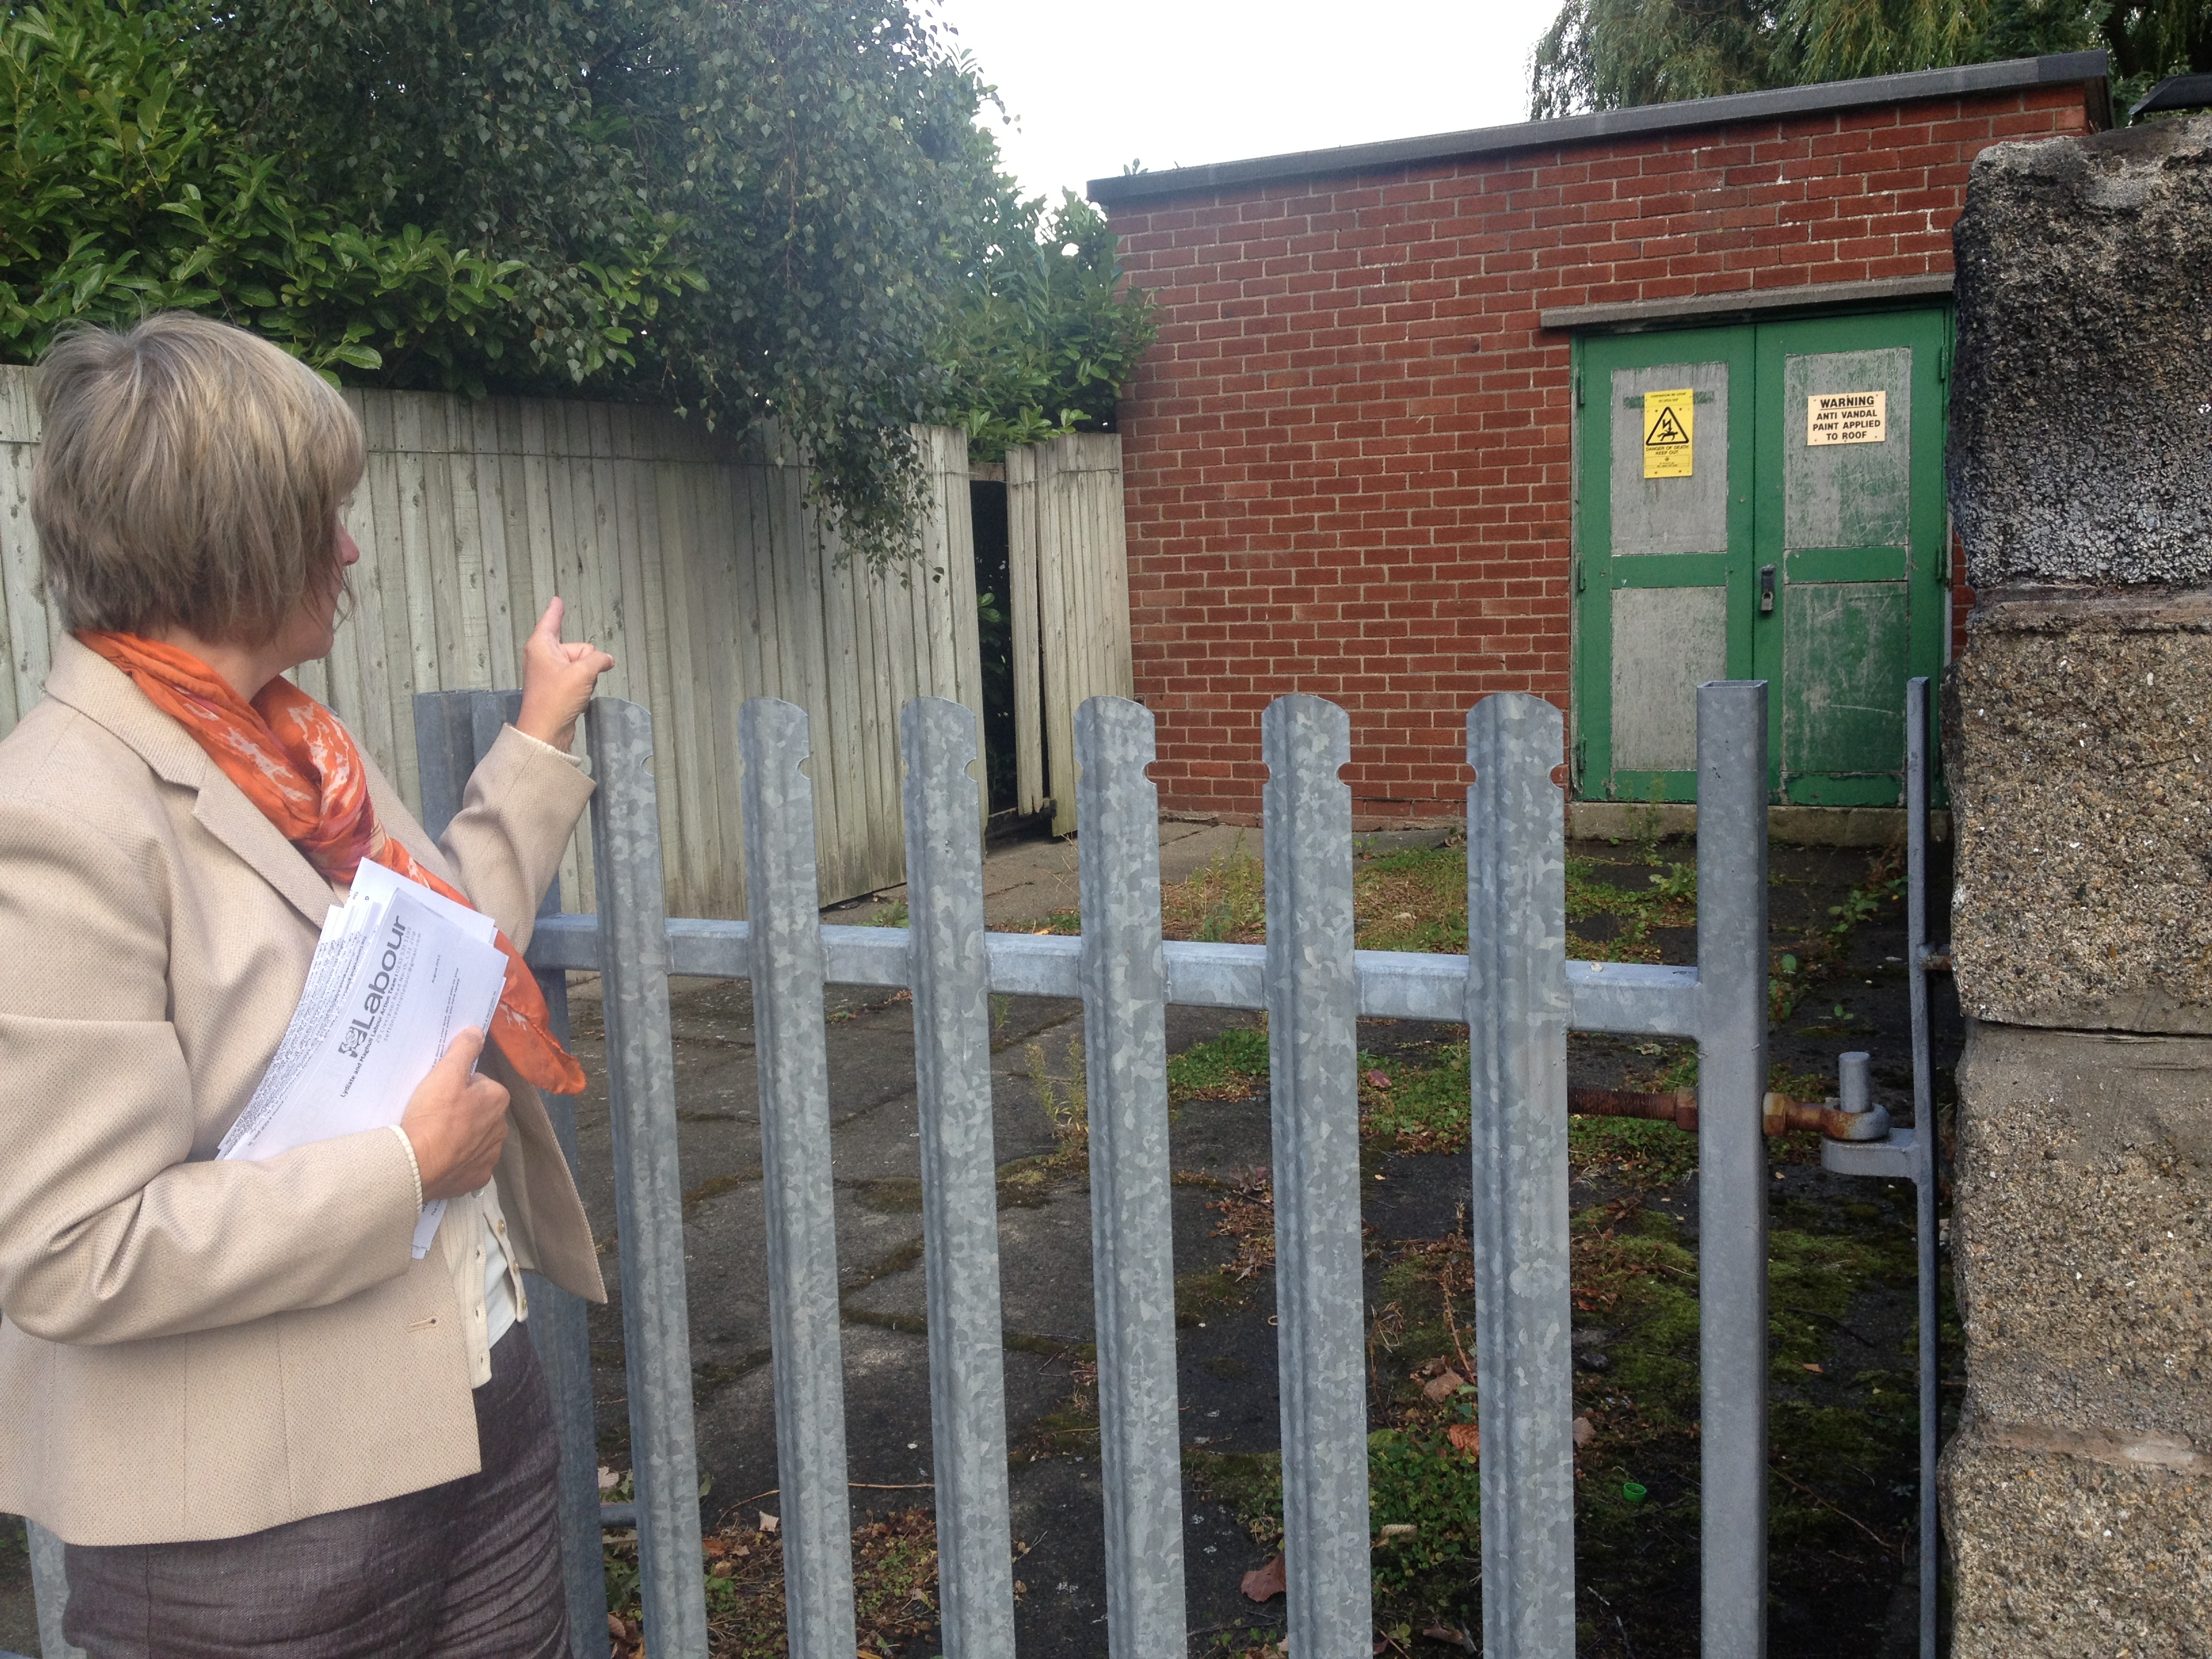 Maghull & Lydiate Labour Action Team's June Burns at the electricity substation where the security fence has been vandalised on Coronation Road in Lydiate.